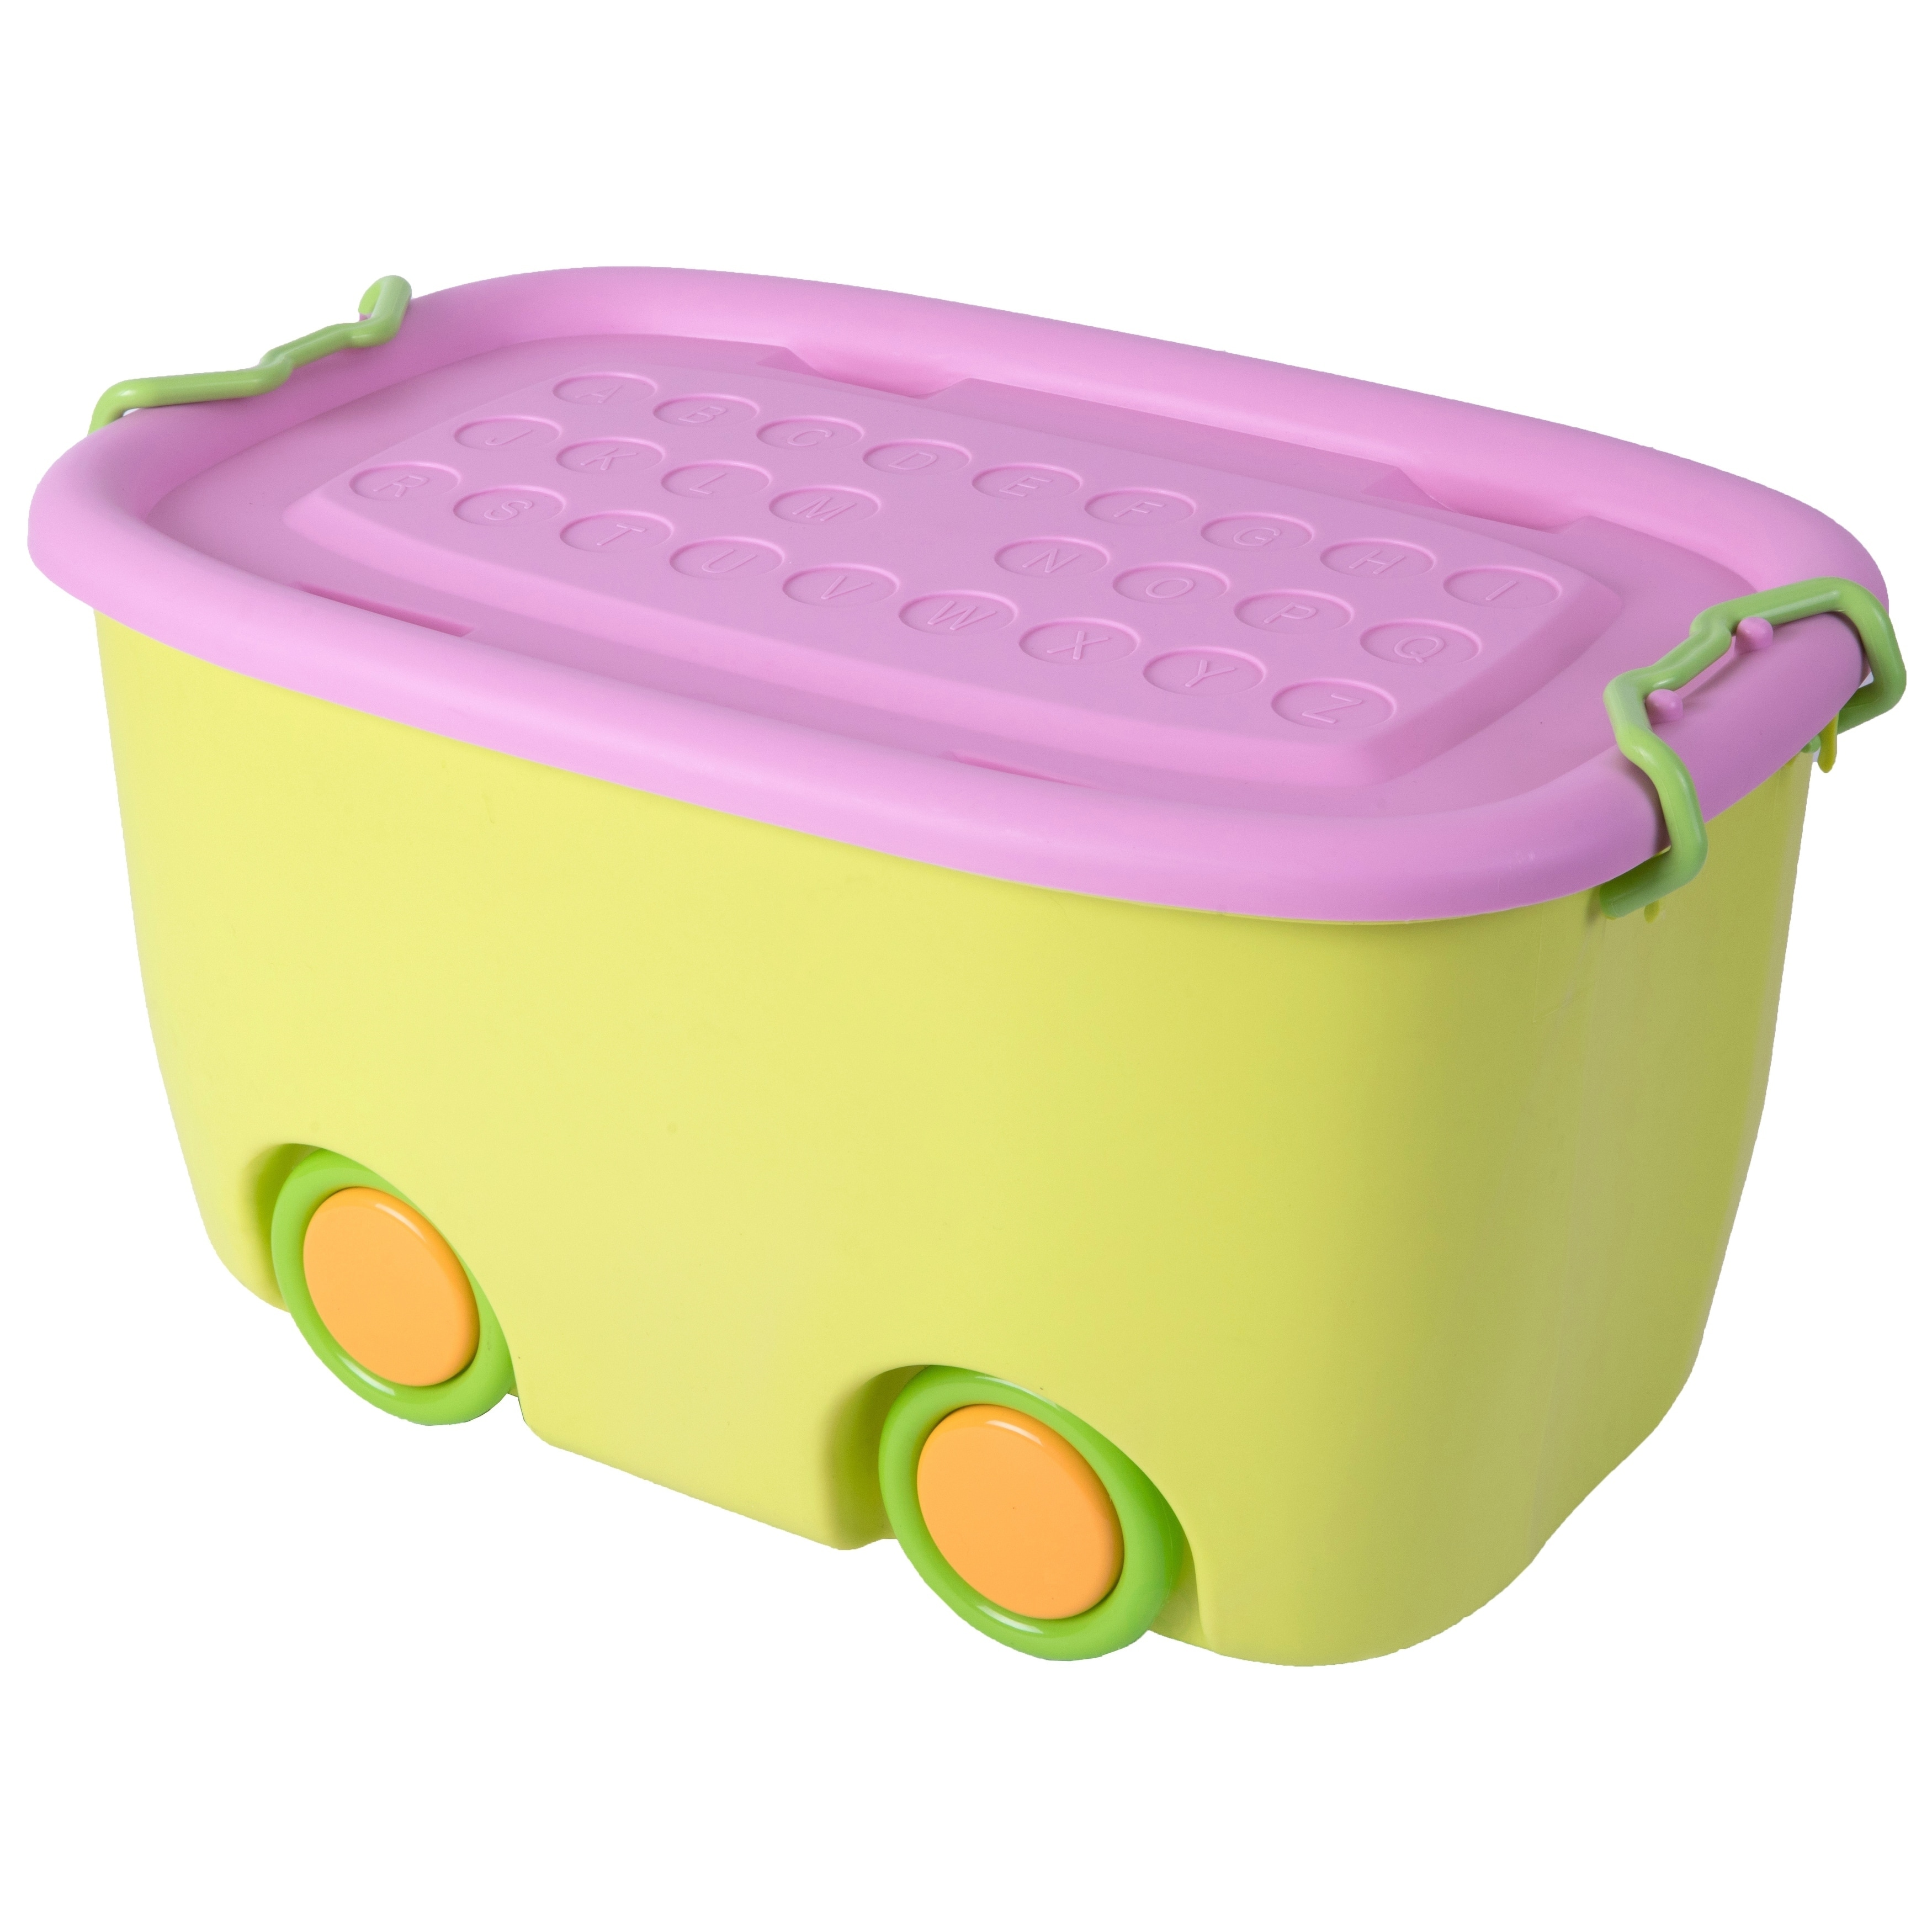 Shop Stackable Toy Storage Box With Wheels   Free Shipping On Orders Over  $45   Overstock.com   14160391